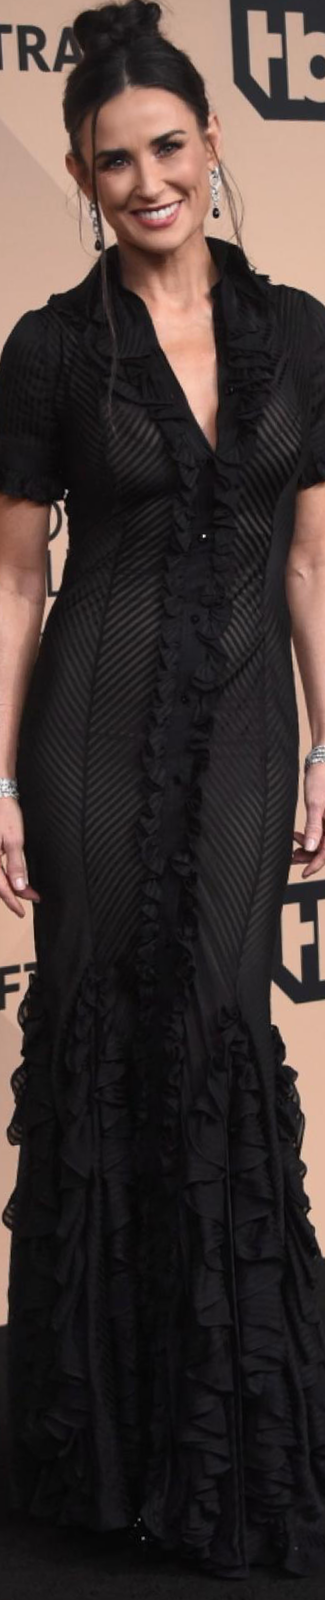 Demi Moore wearing Zac Posen 2016 SAG Awards